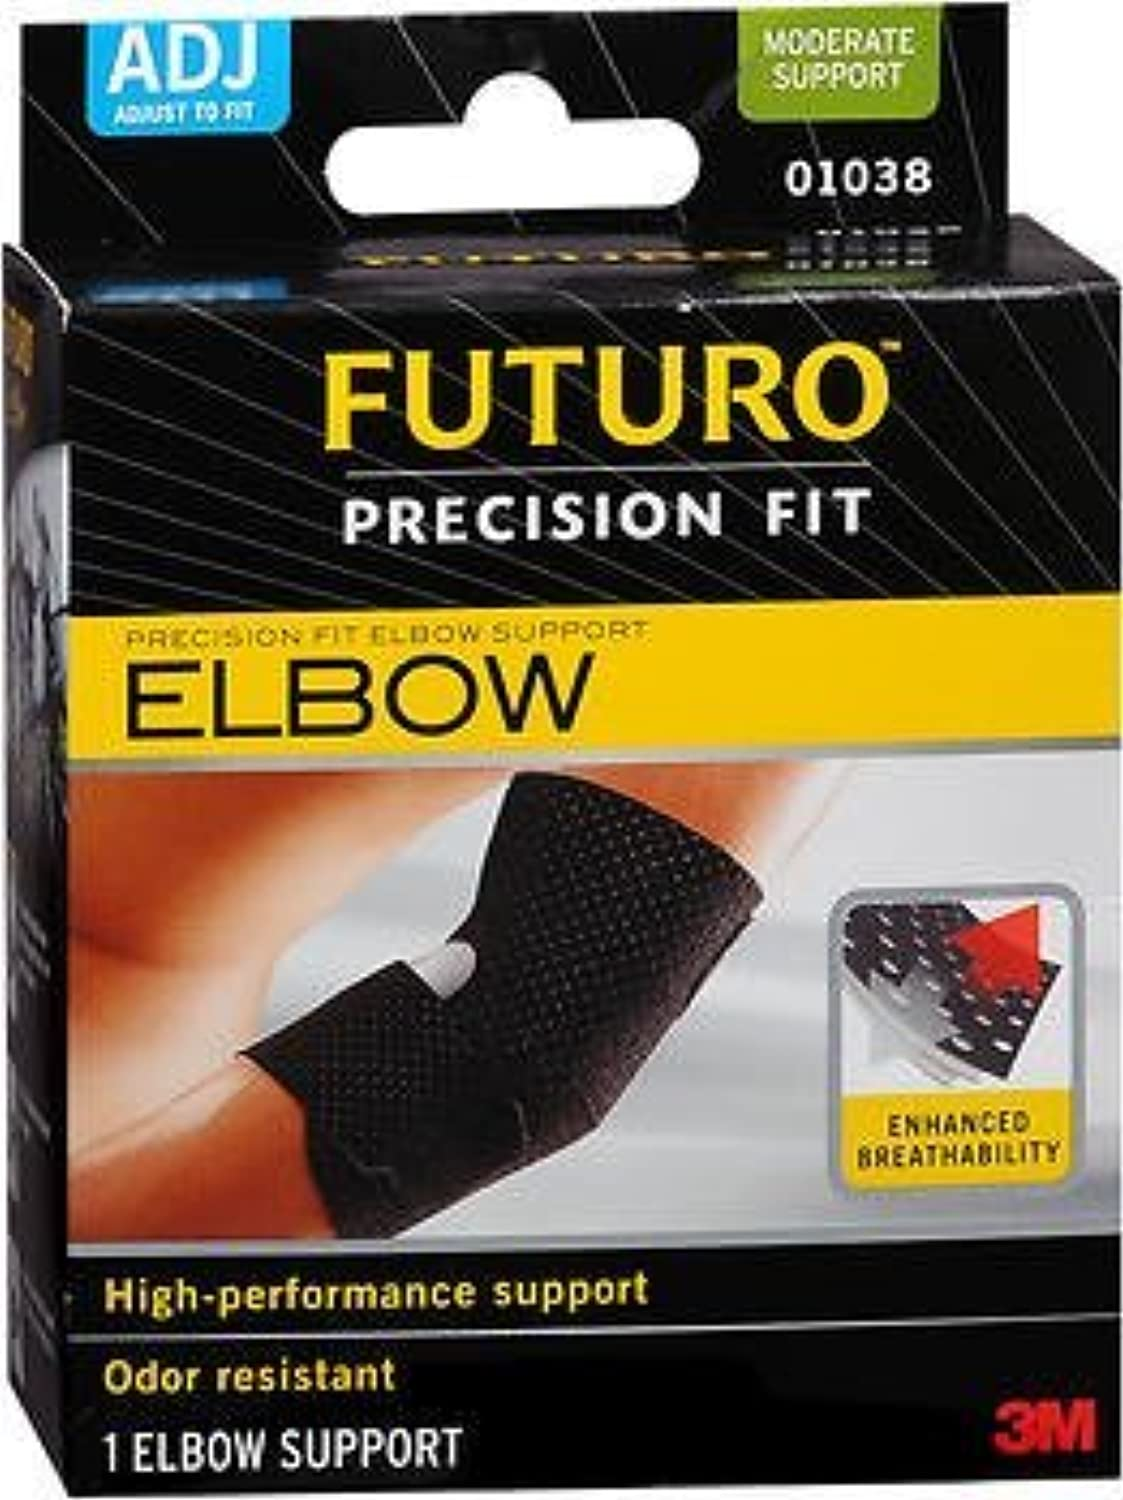 Futuro Precision Fit Elbow Support Adjust to Fit  Each, Pack of 4